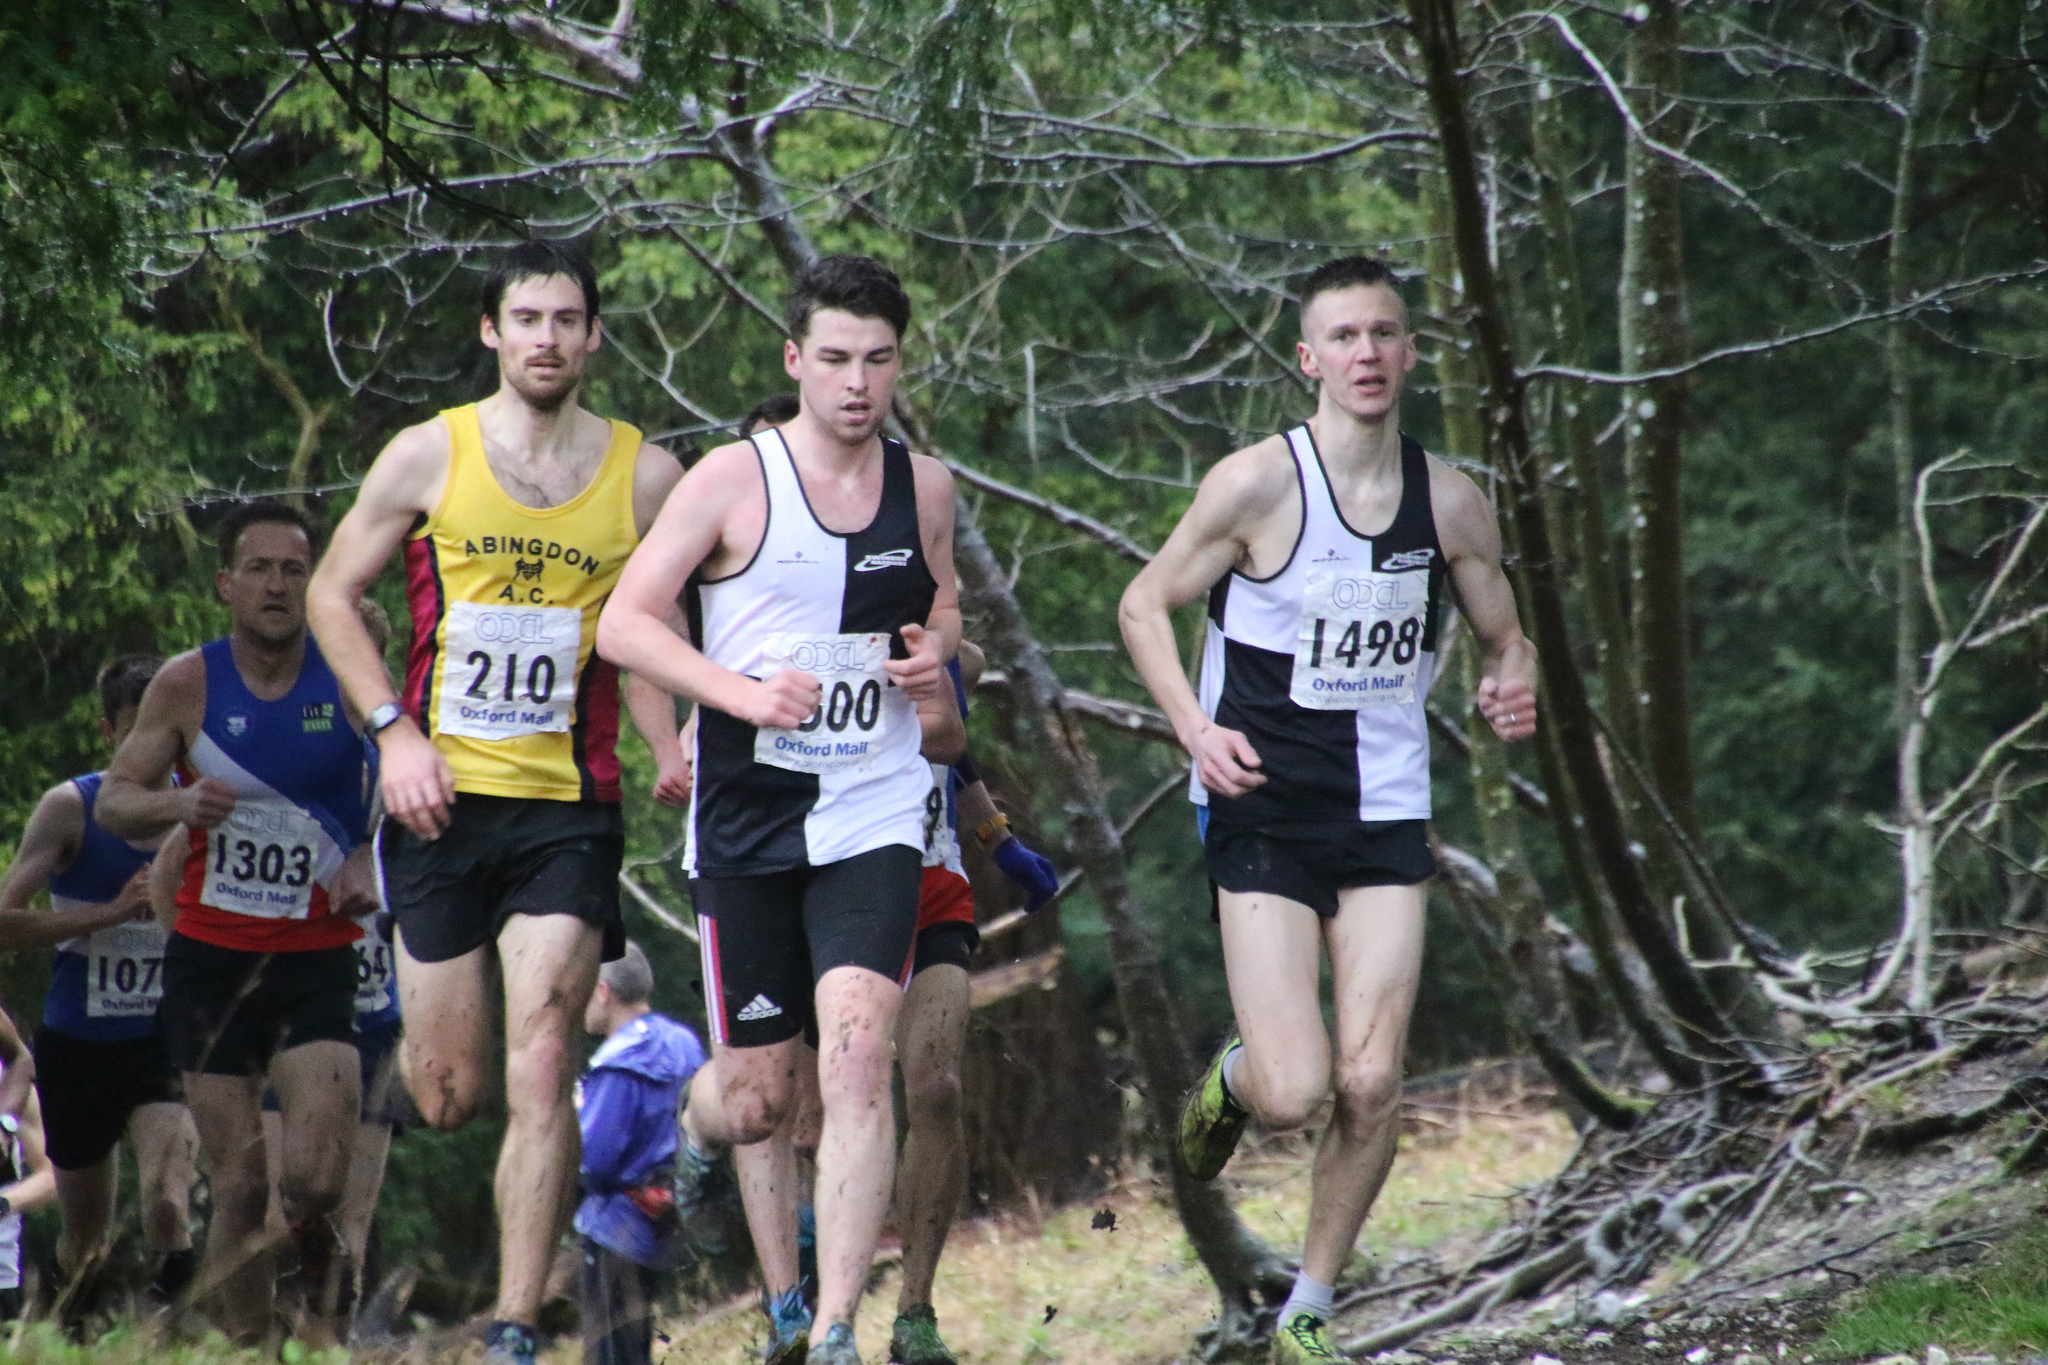 Race winner Dan Blake (1303) and men's overall winner Alex Wall-Clarke (210) trail two Swindon Harriers athletes in the early stages Picture: Barry Cornelius